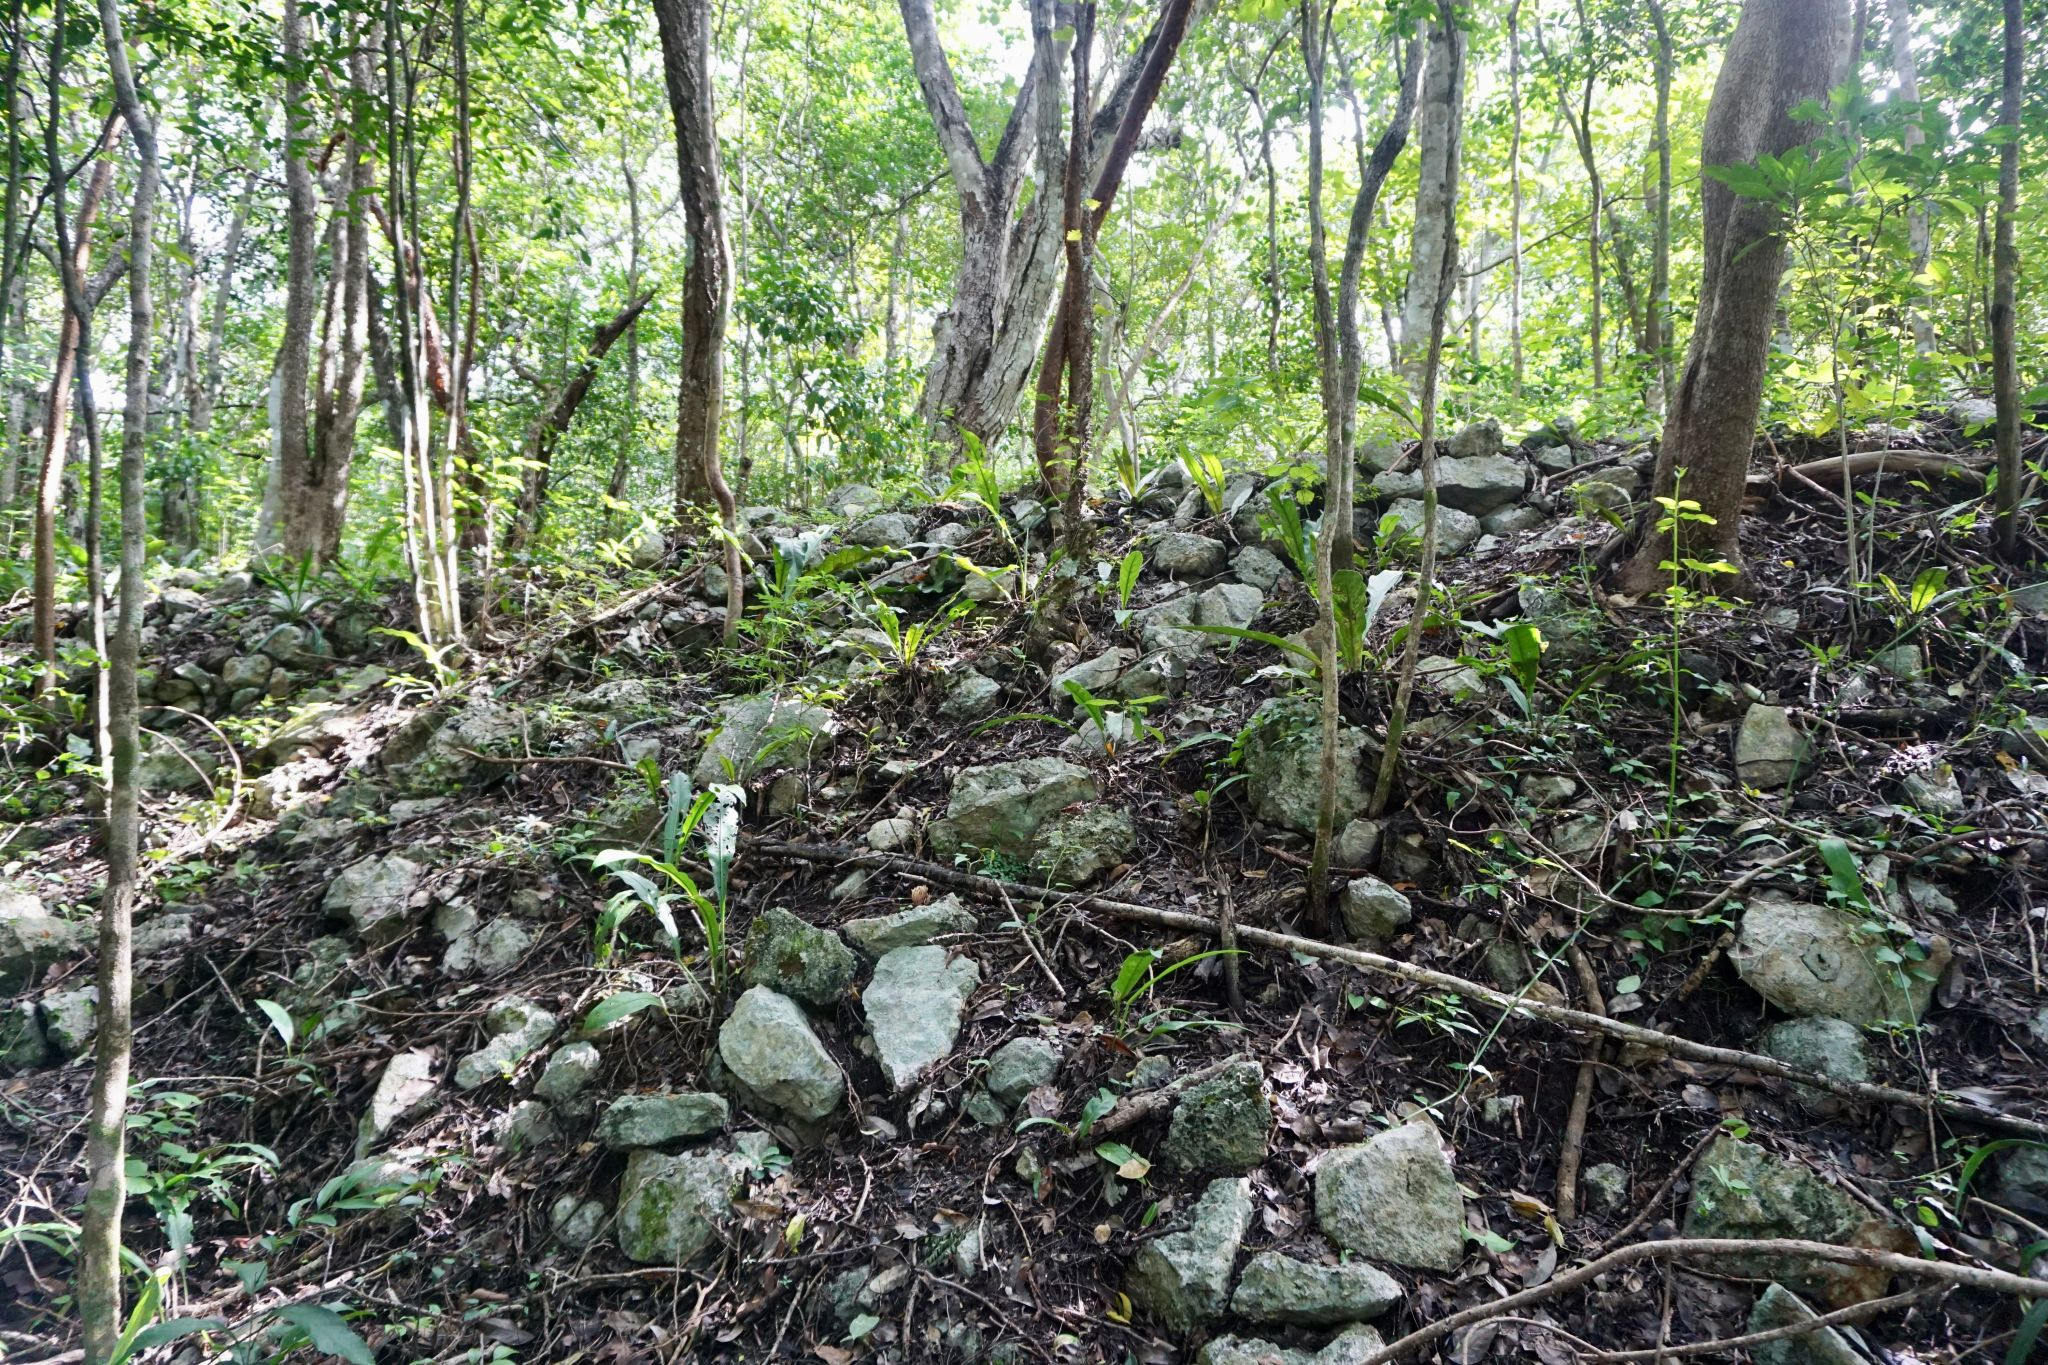 Visiting Cobá comes with the added bonus of a Mexican jungle experience